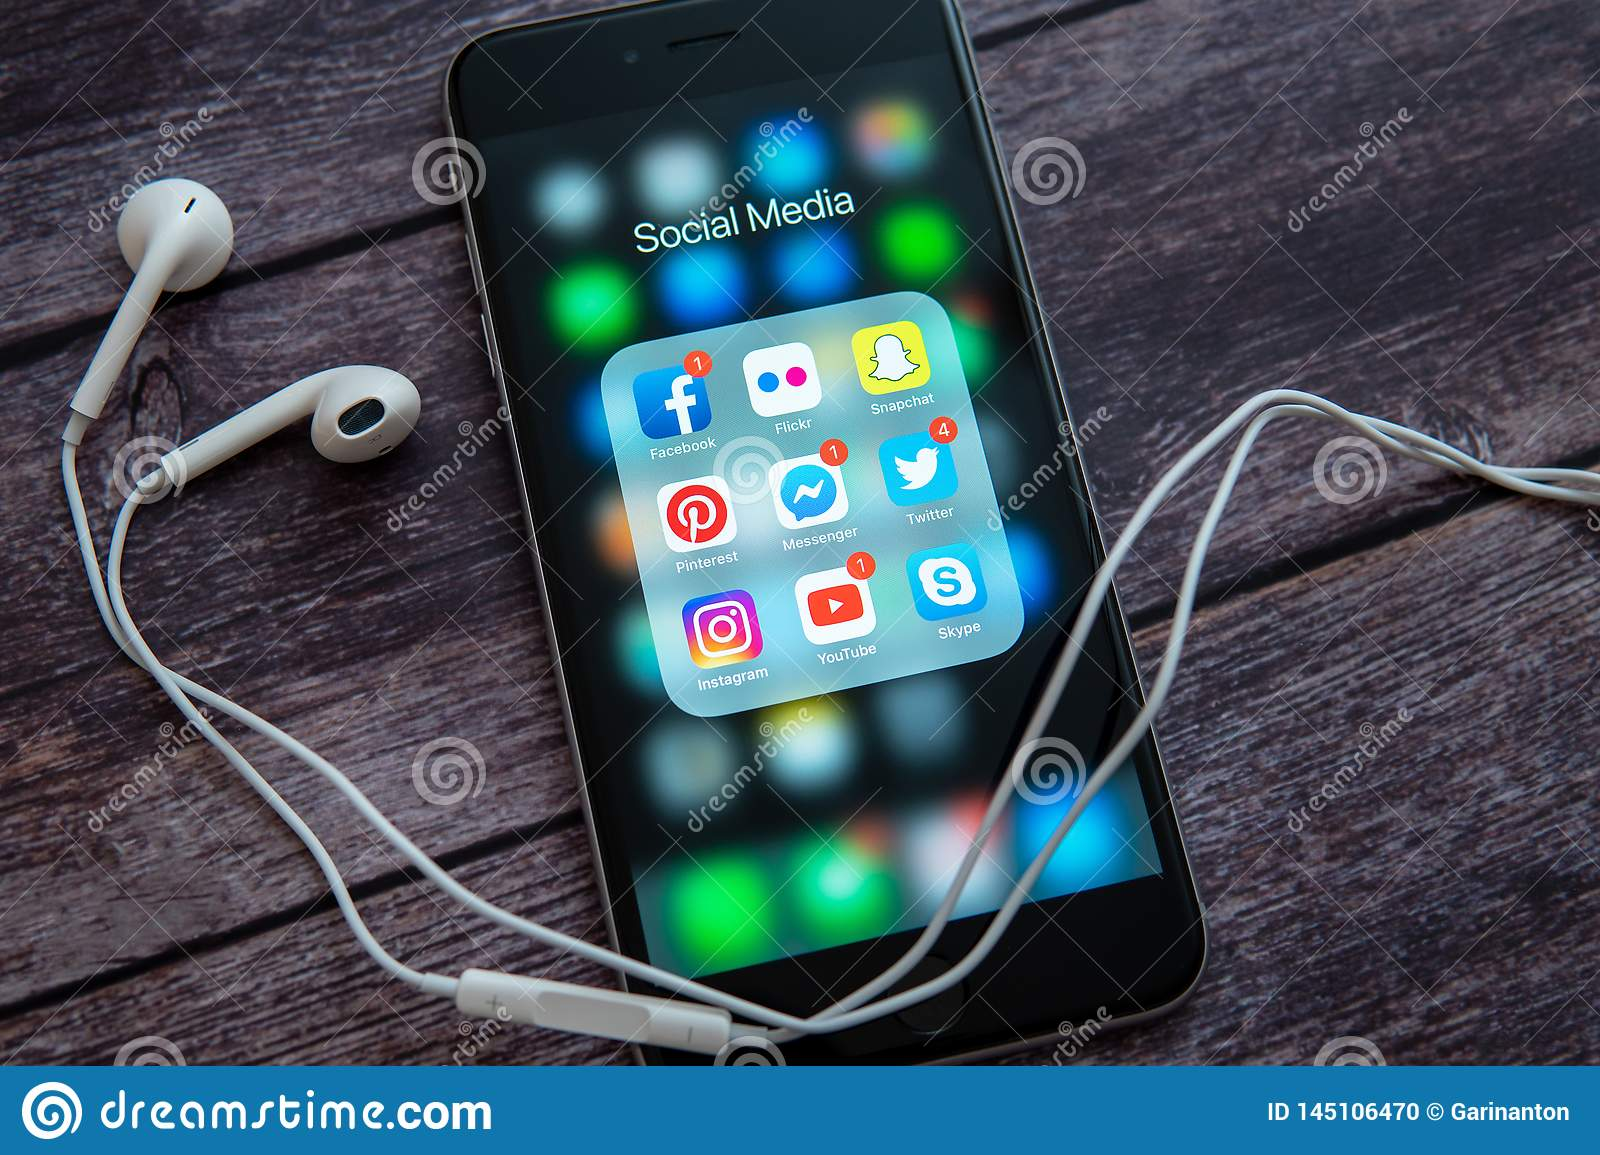 Black Apple iPhone with icons of social media and white headset